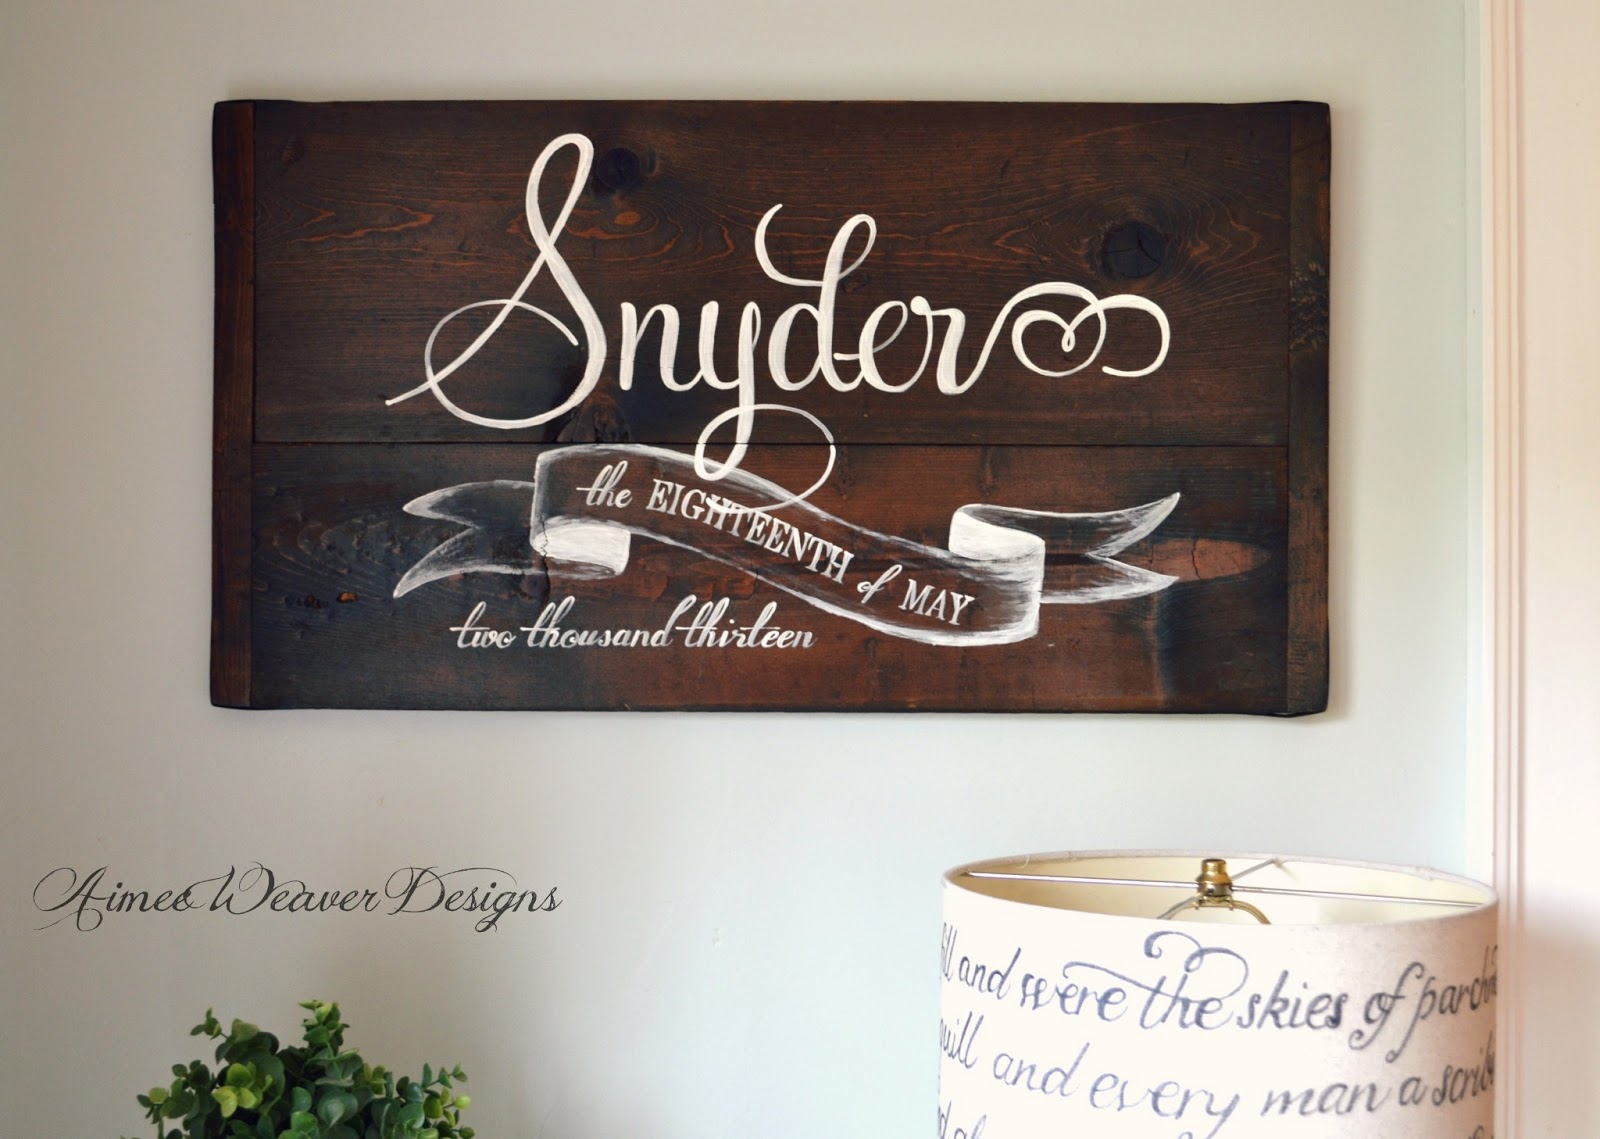 Week Of Wedding Gifts For Bride : signs in the past few weeks for customers to give as a wedding gift ...